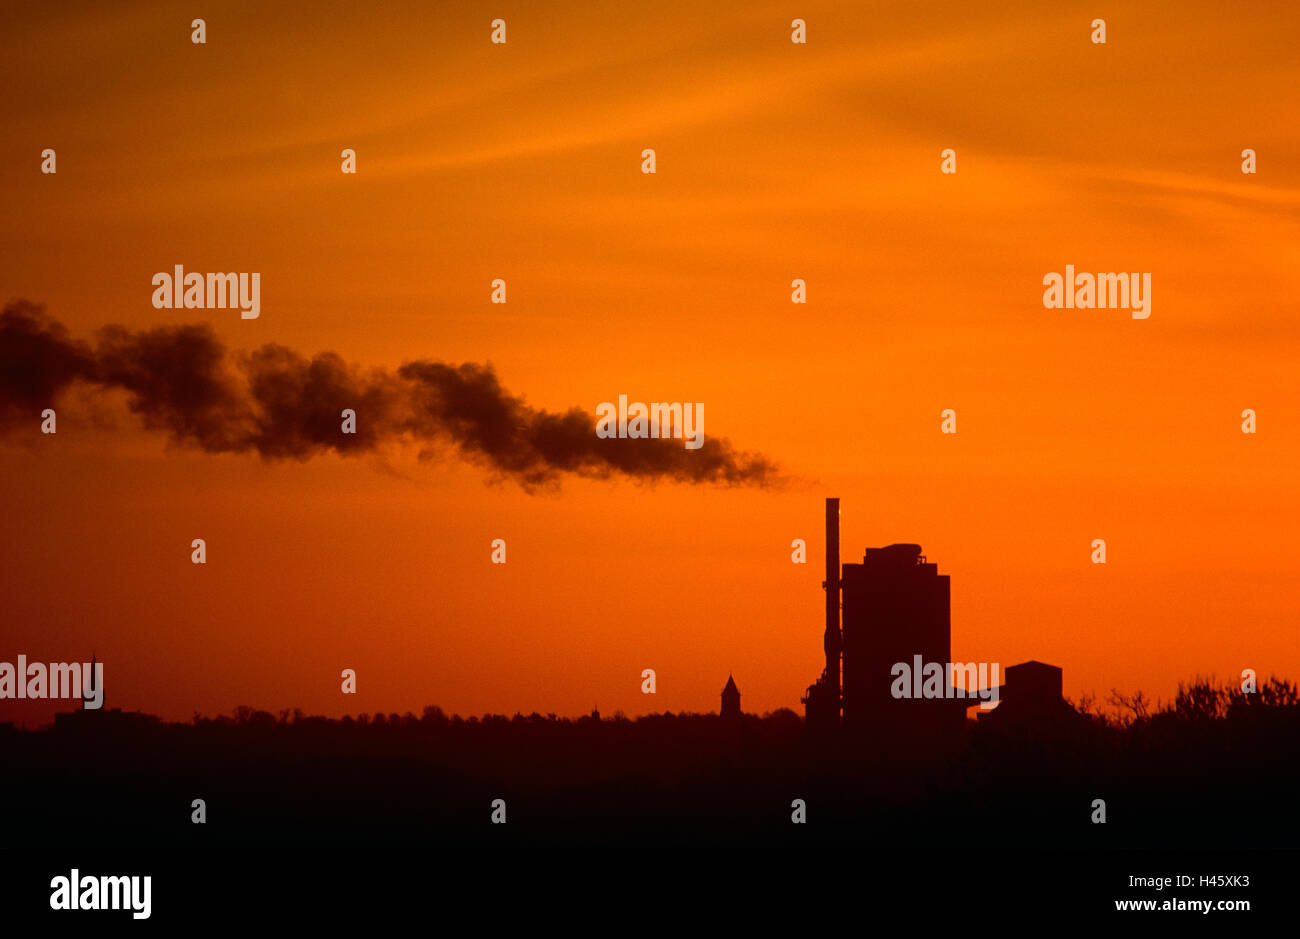 Sunset over industrial plot - Stock Image